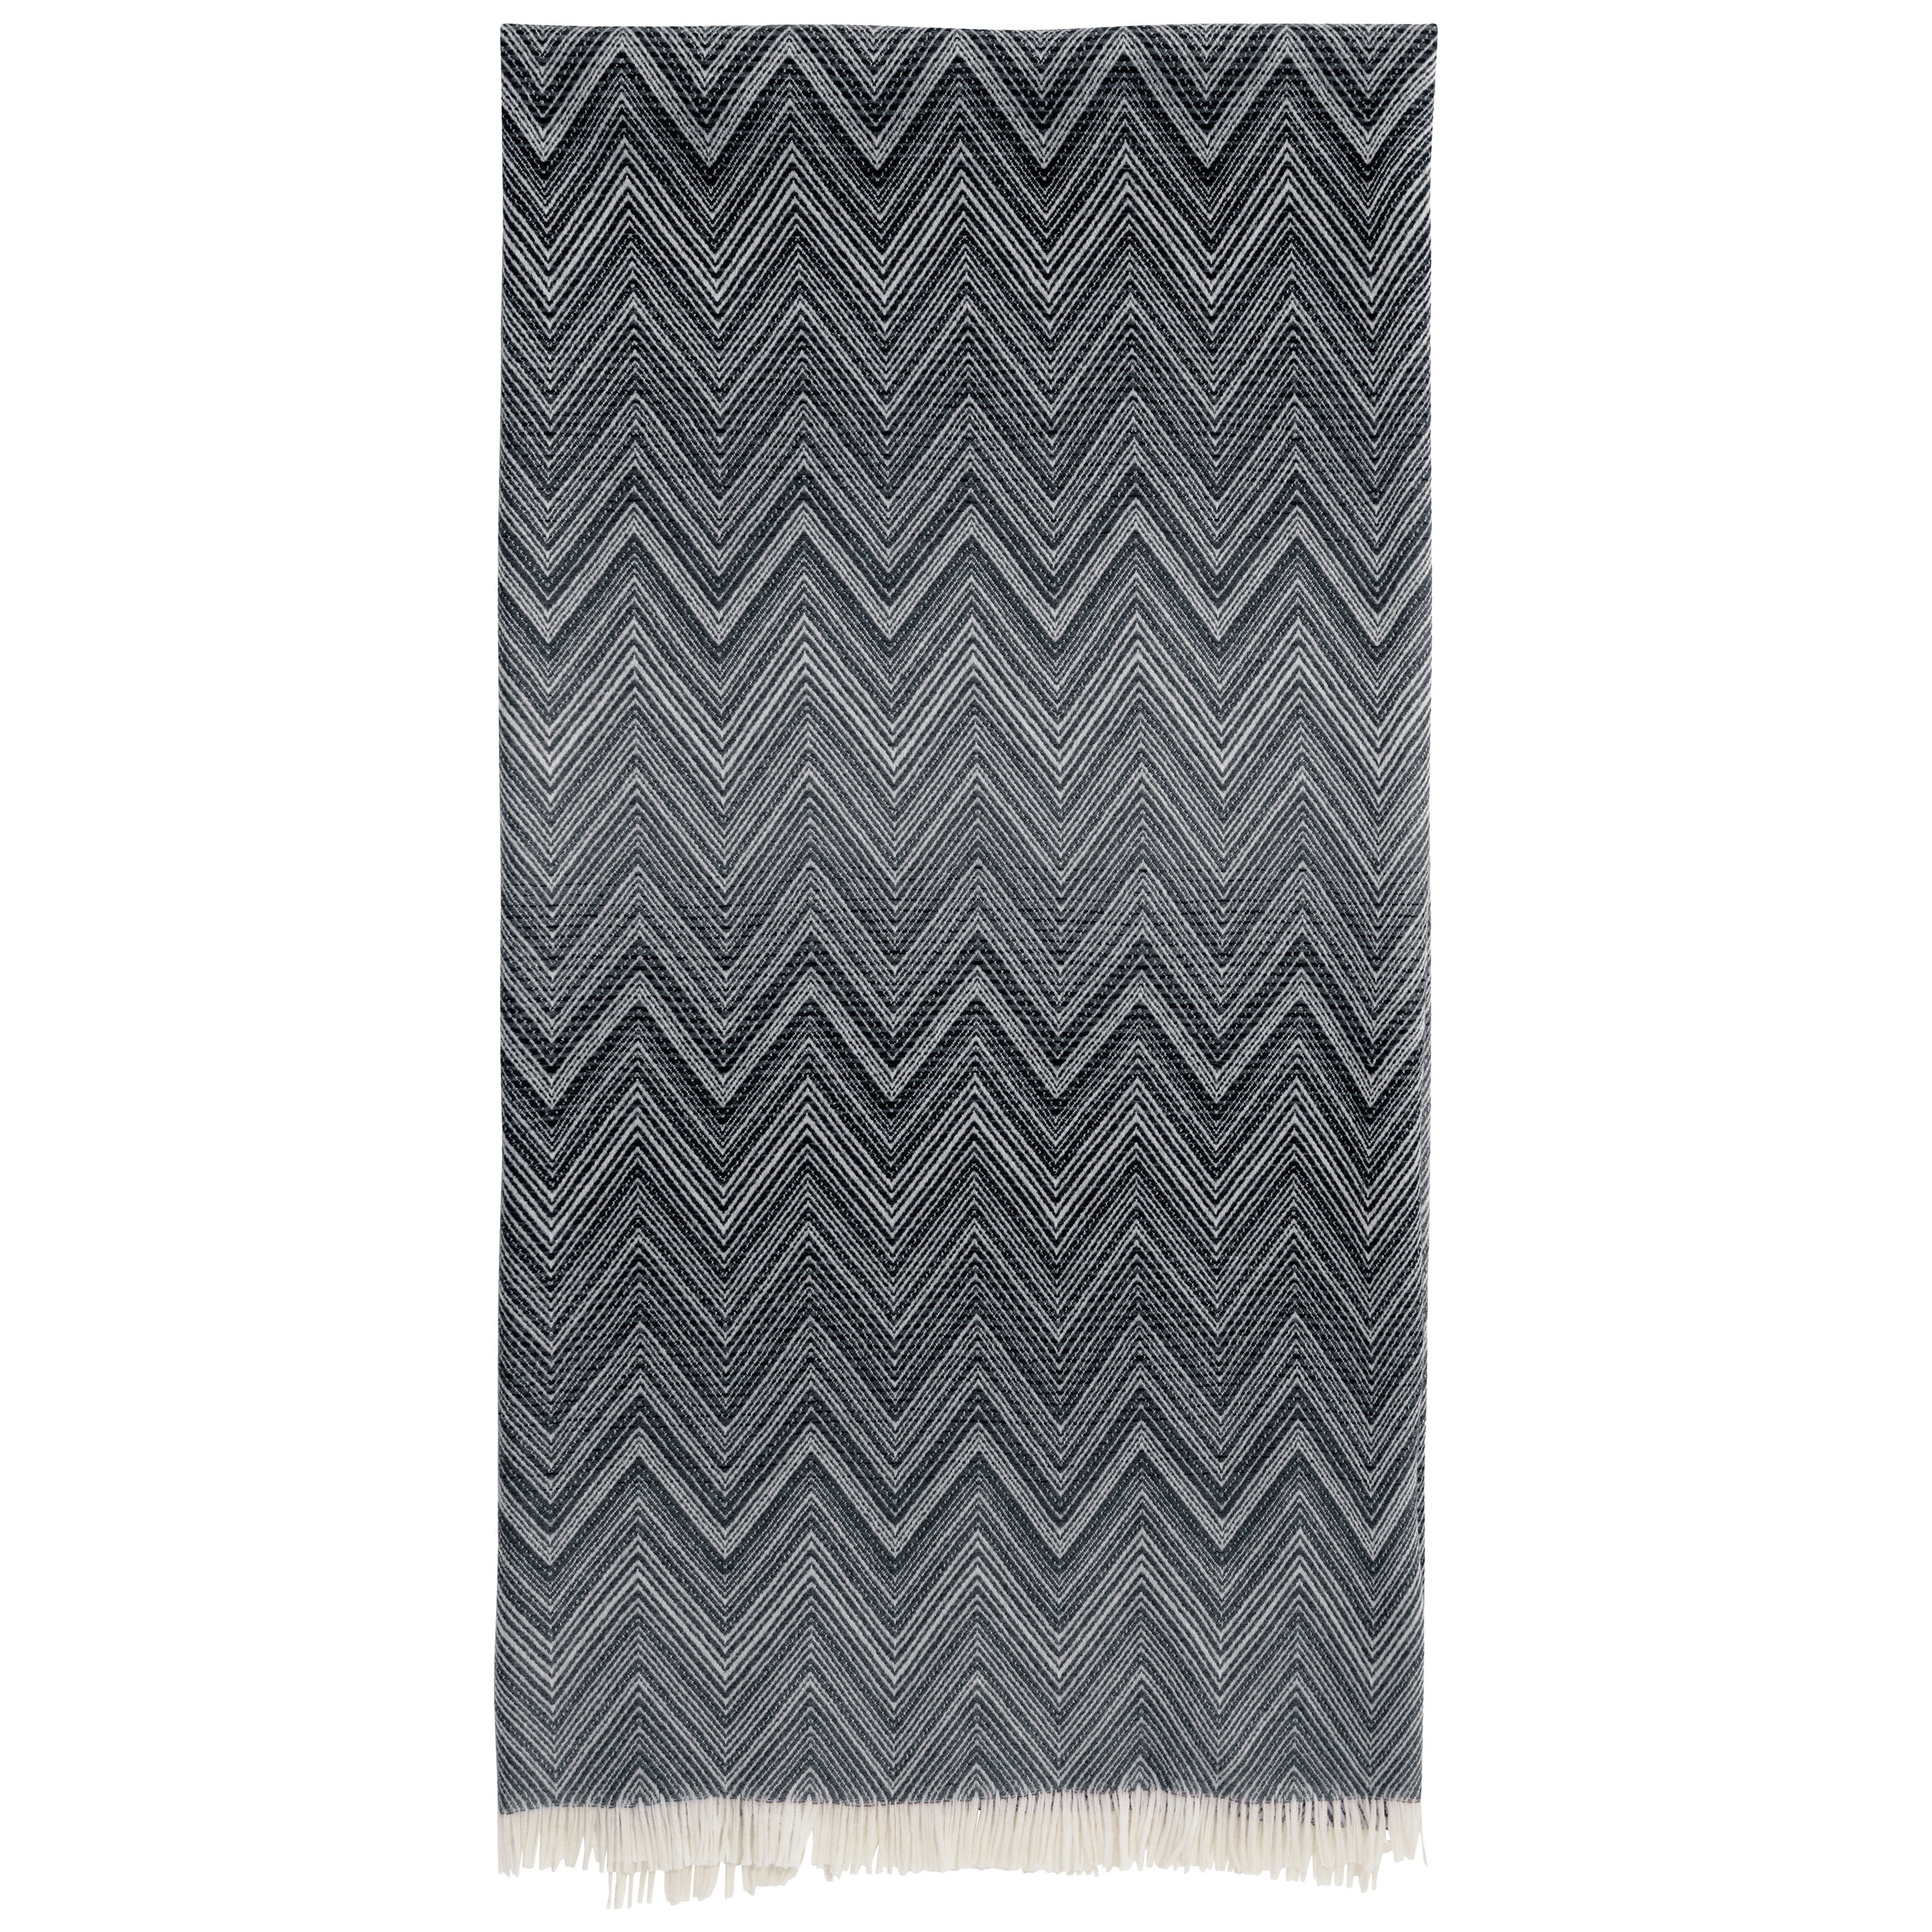 Missoni Home Timmy Throw in Black & White Chevron Print